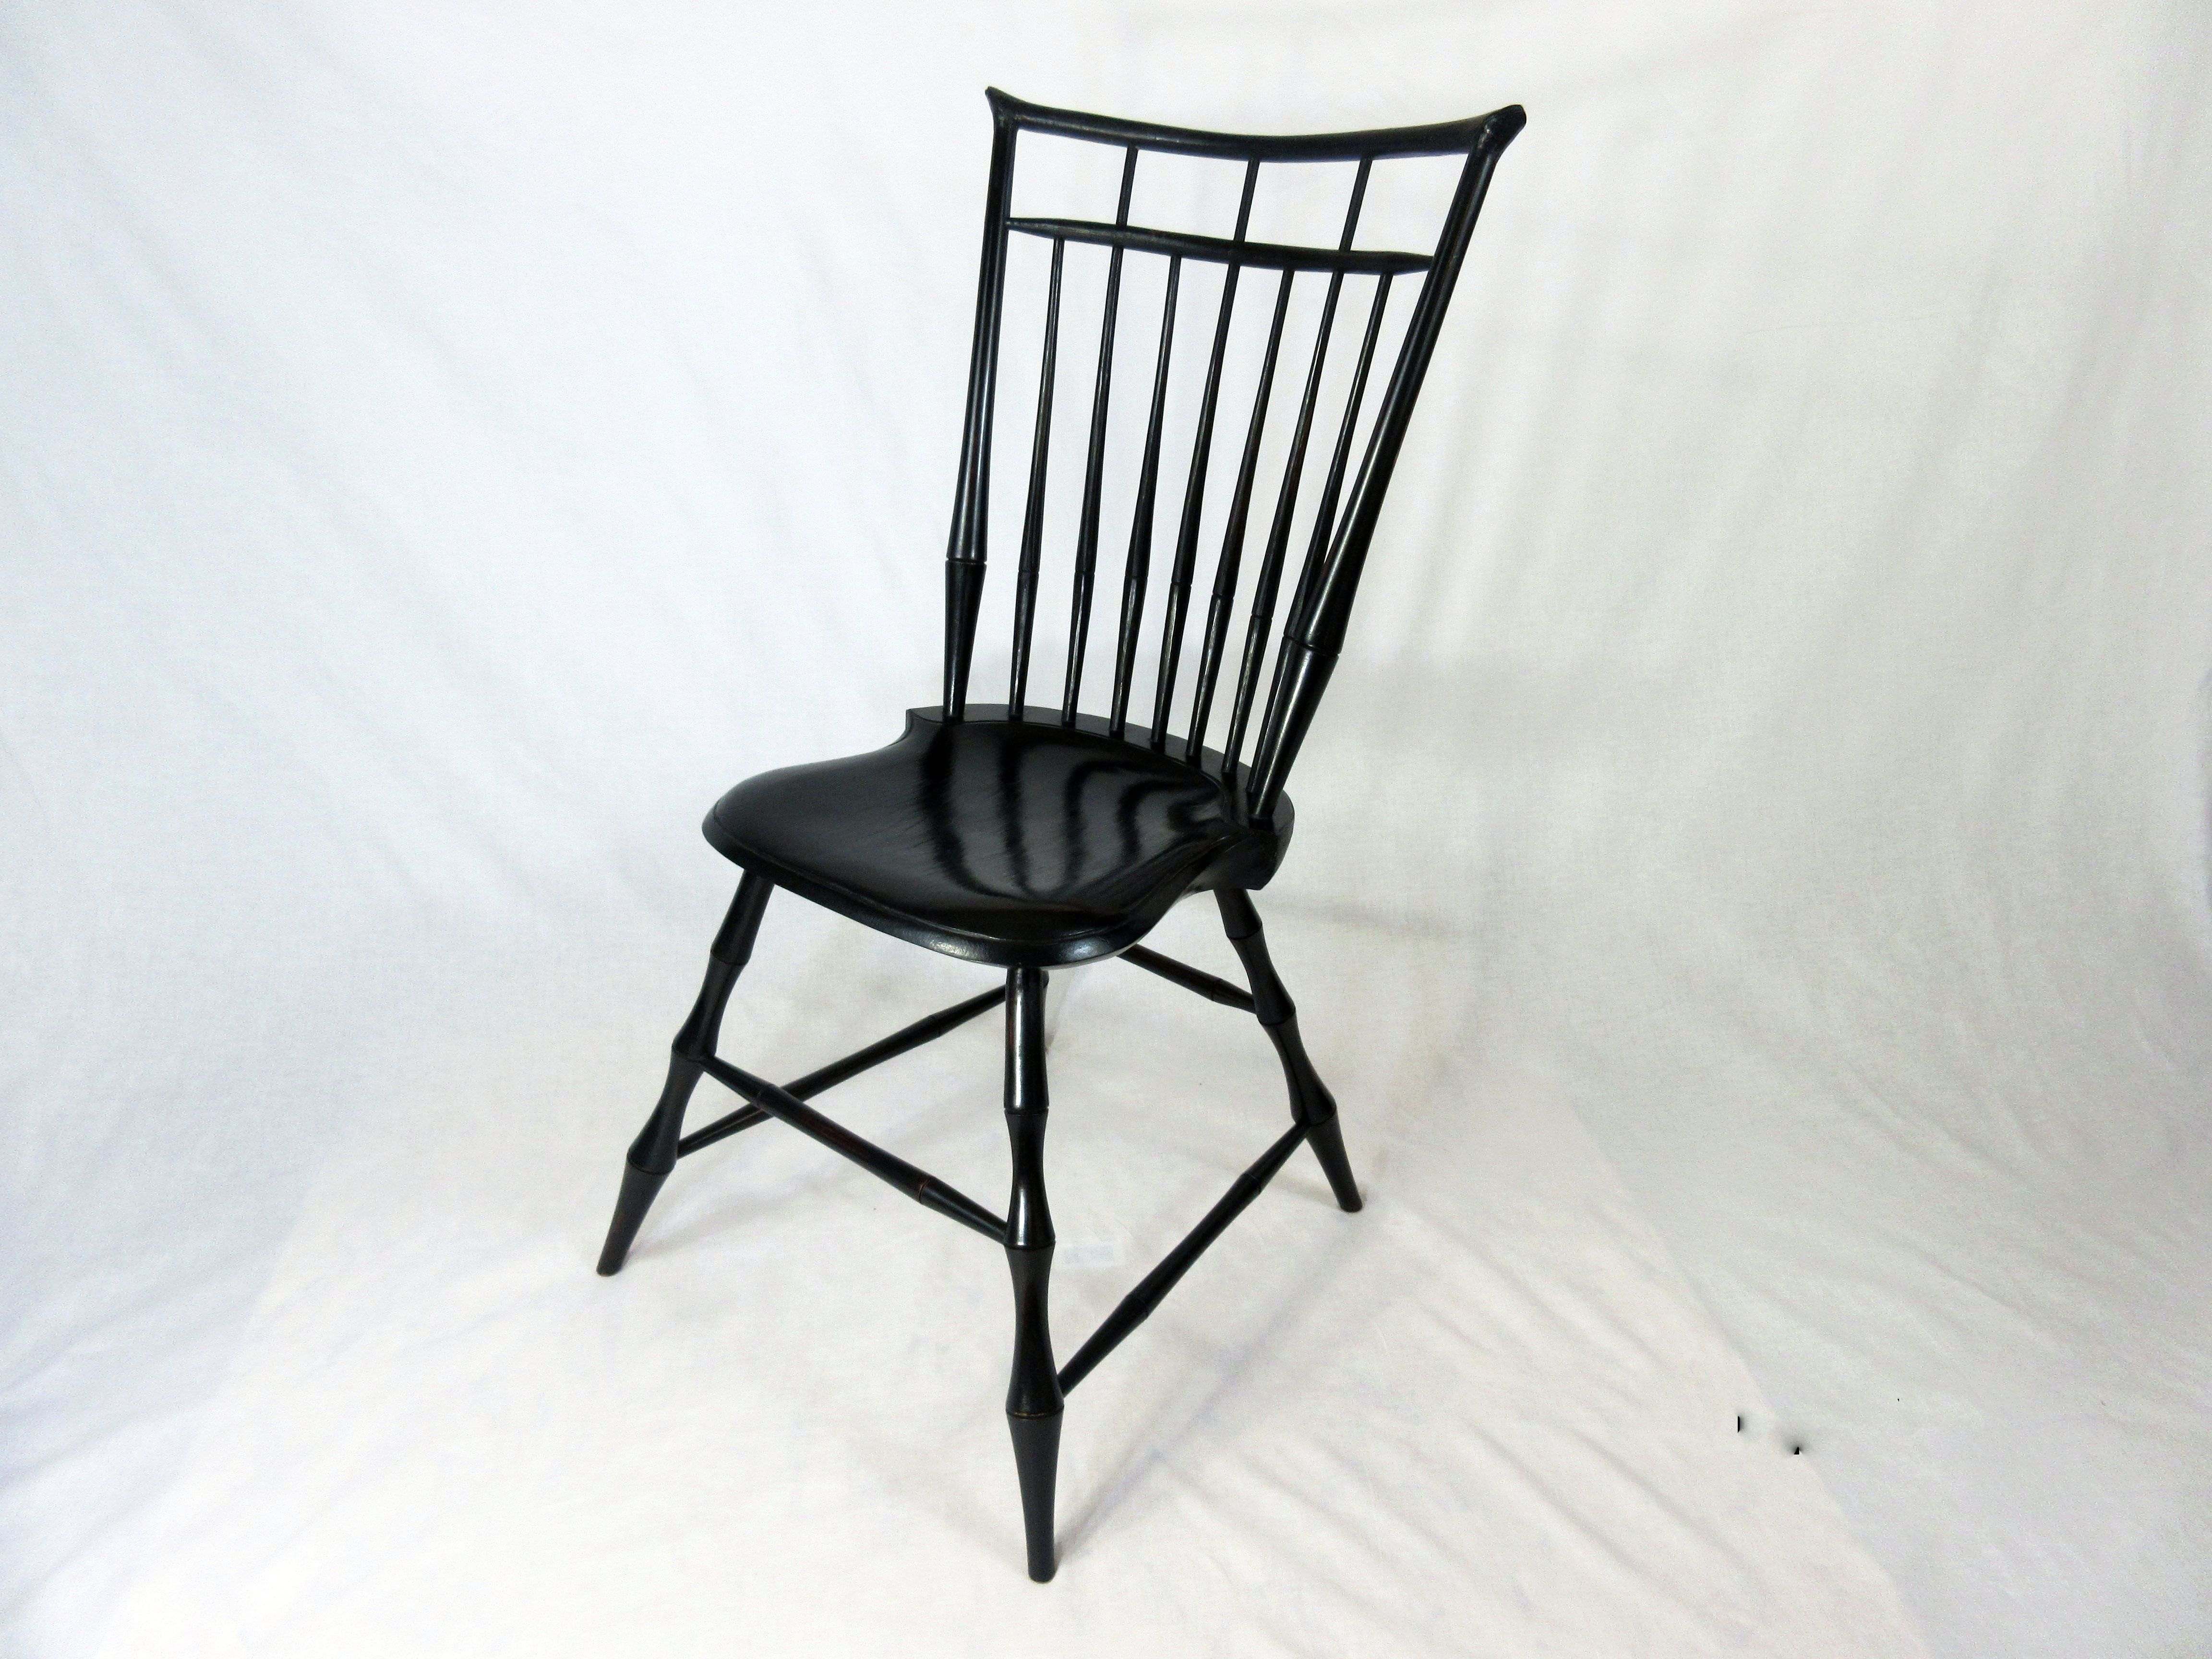 windsor chair kits diy bedroom hammock buy a handmade bird cage side made to order from